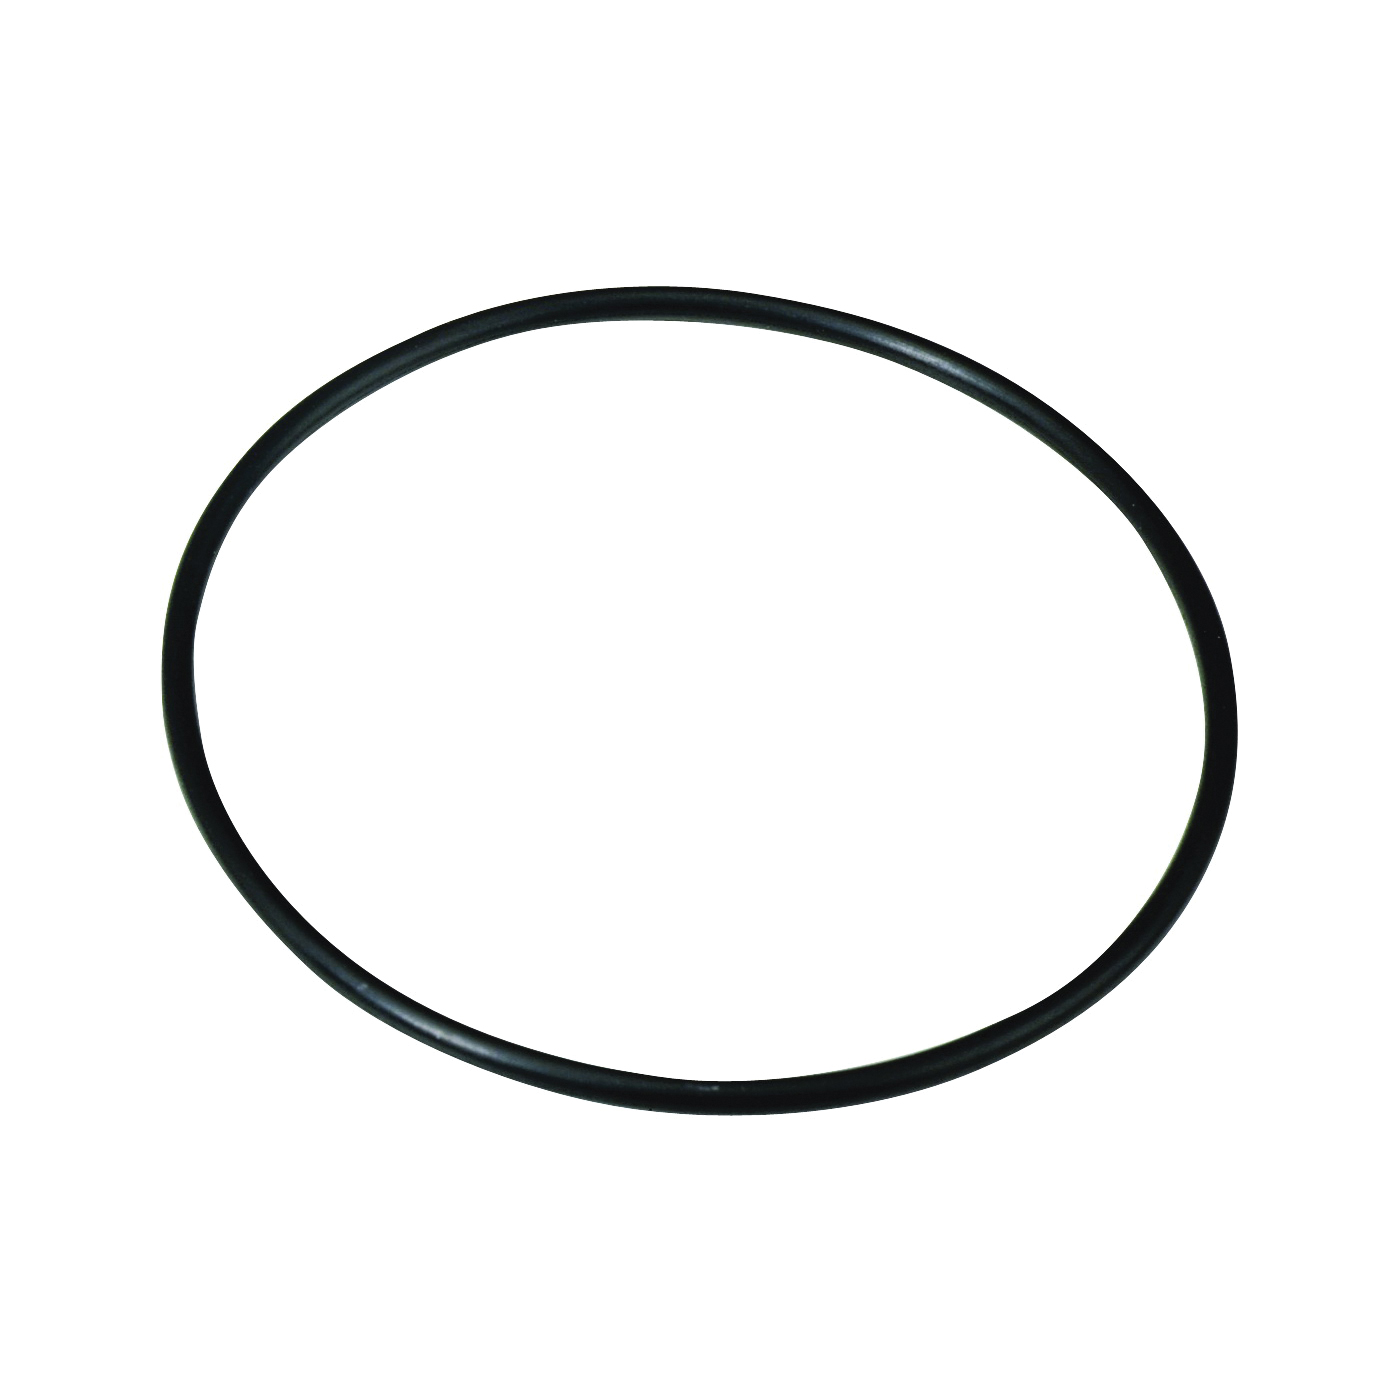 Picture of Culligan OR-100 Filter Housing O-Ring, Buna-N, For: HD-950, HD-950A Water Filters